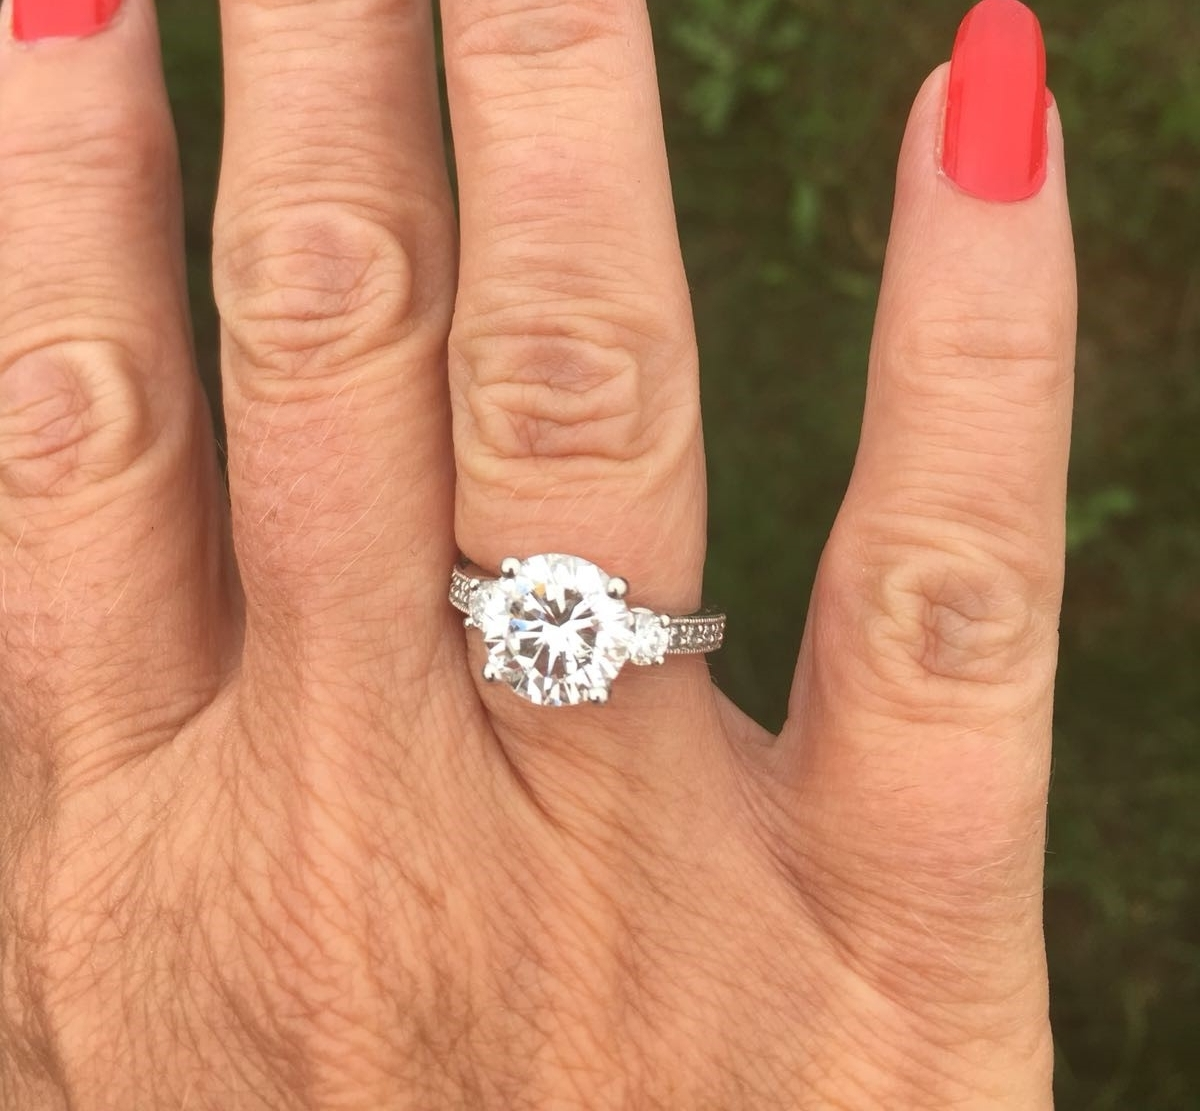 """Platinum Ring Redesign   """" What an amazing transformation you have created to my wife's Diamond Solitaire ring. The new Platinum ring you have designed and crafted is stunning.    """"She can't wait for you to work your 'magic' on her three stone ring now!"""" - Mr Havers, Harrogate"""